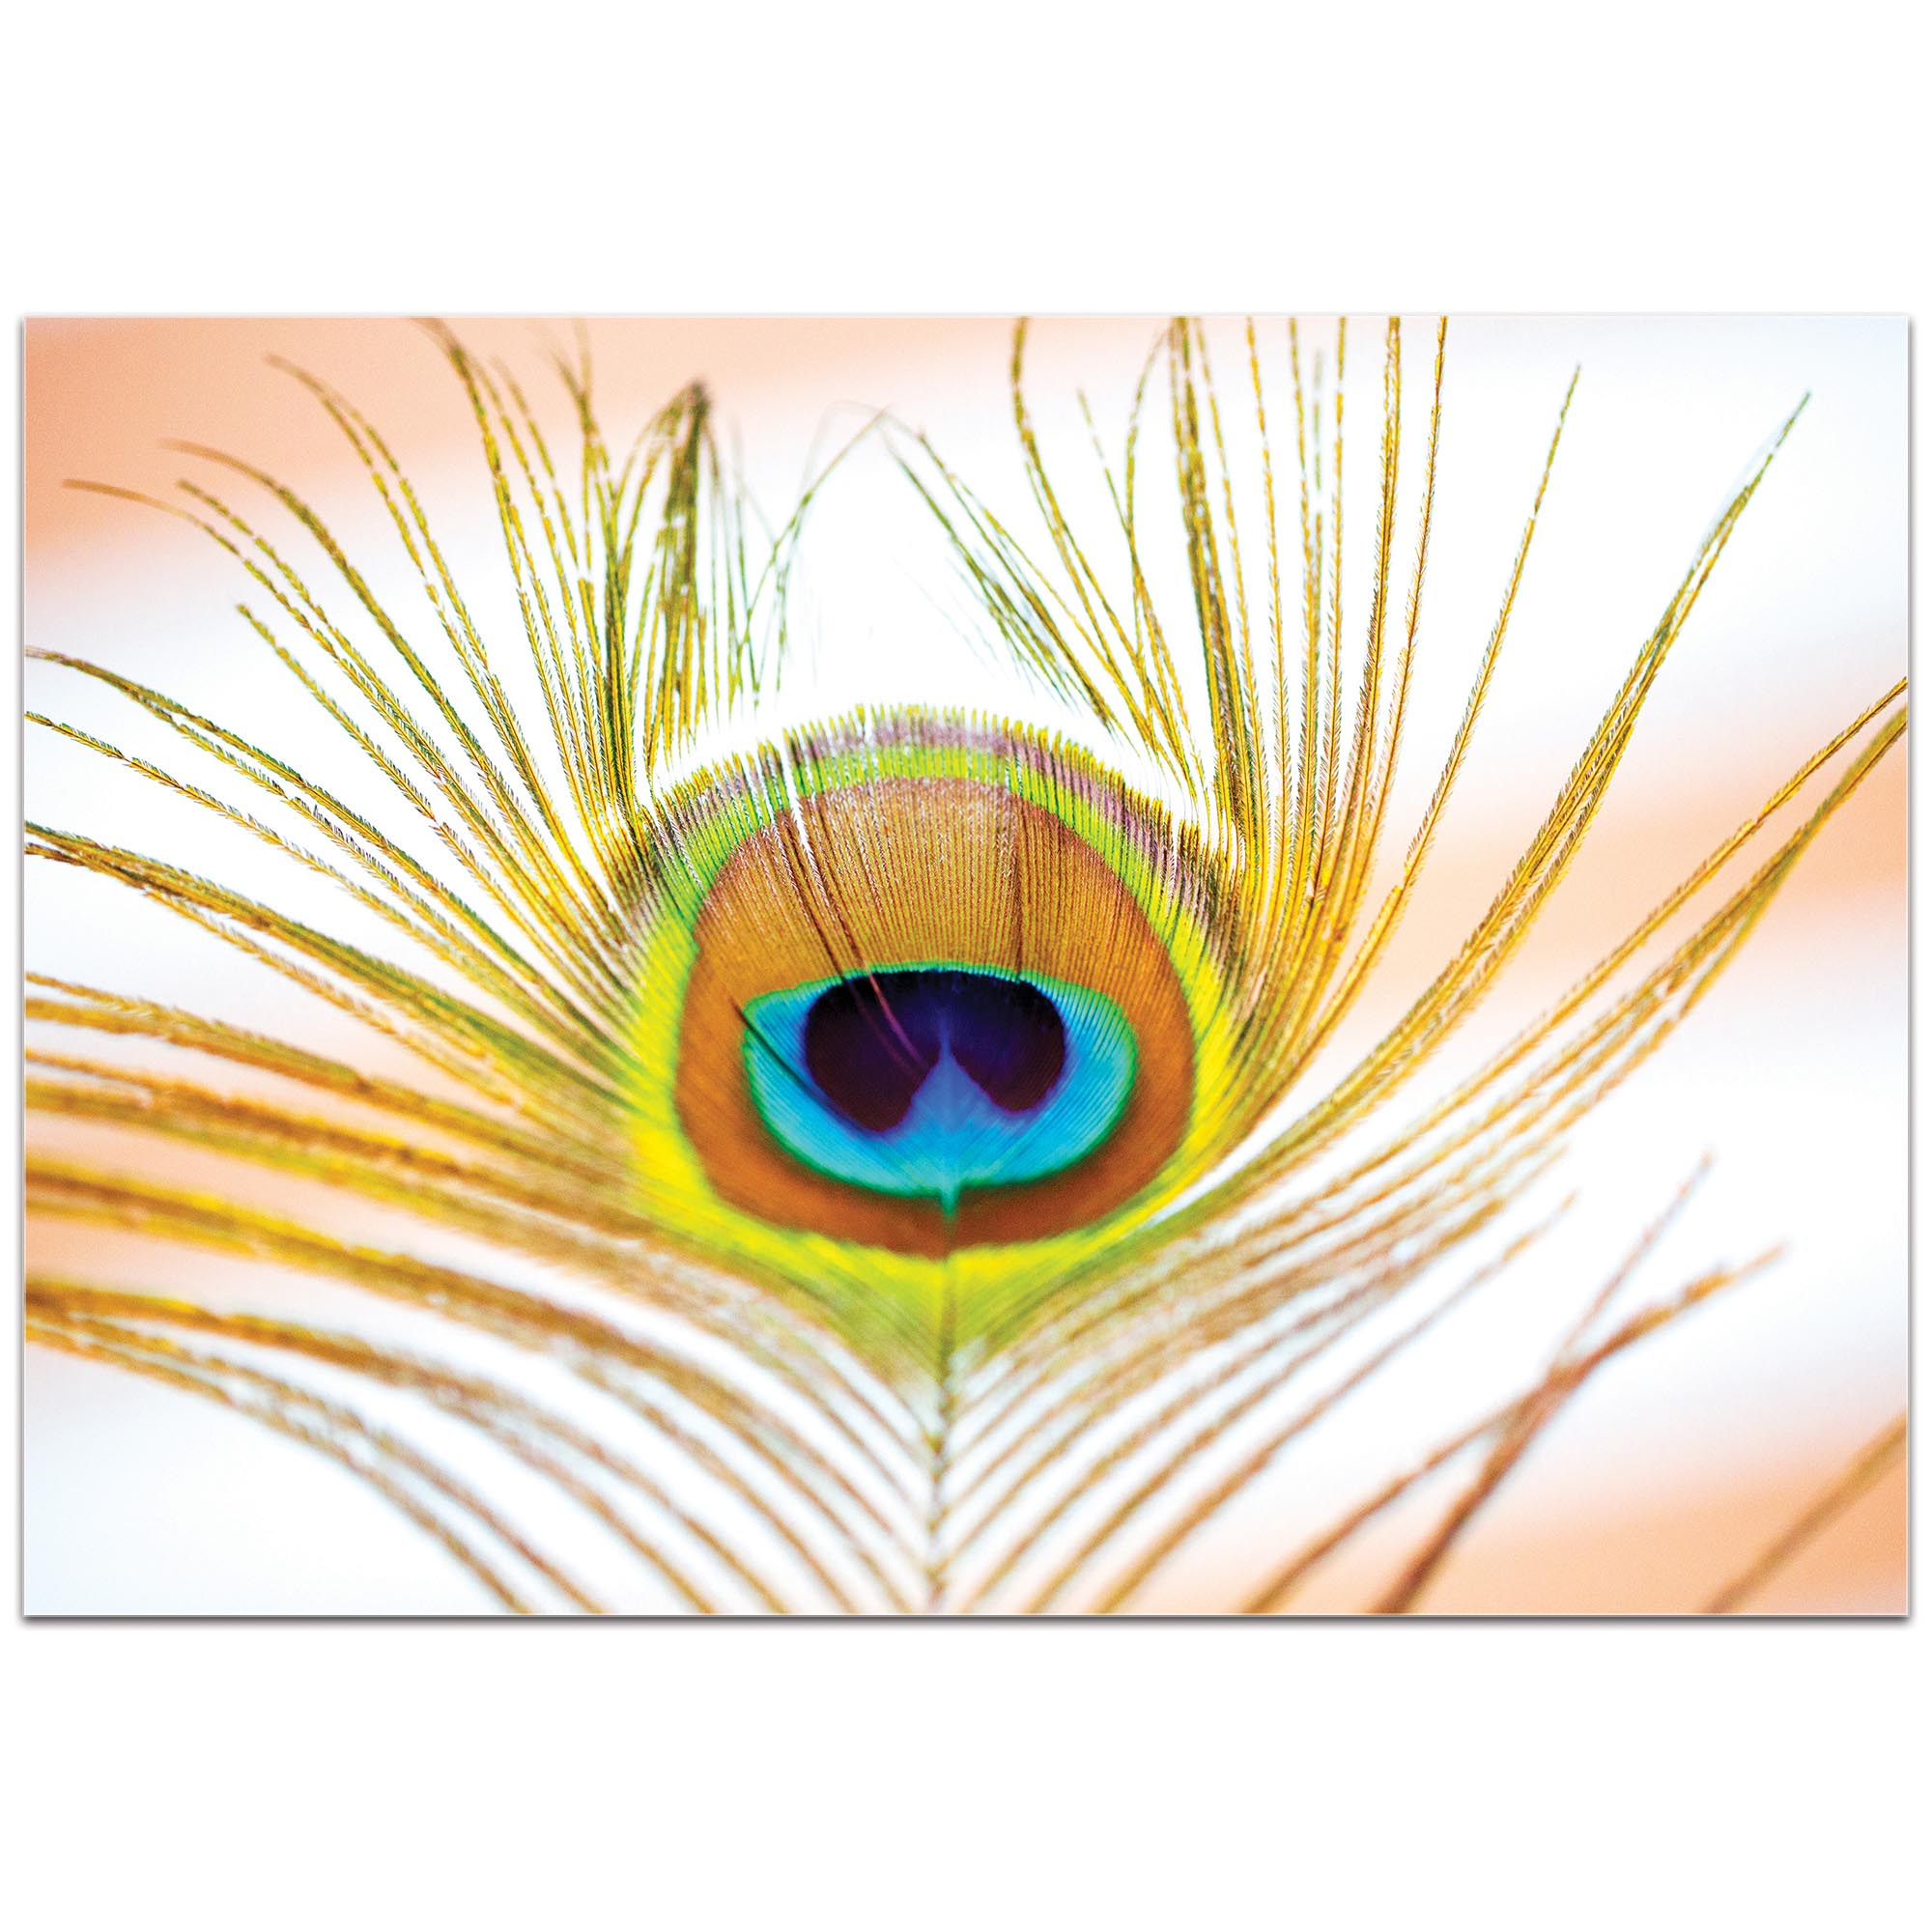 Contemporary Wall Art 'Peacock Sprout' - Wildlife Decor on Metal or Plexiglass - Image 2